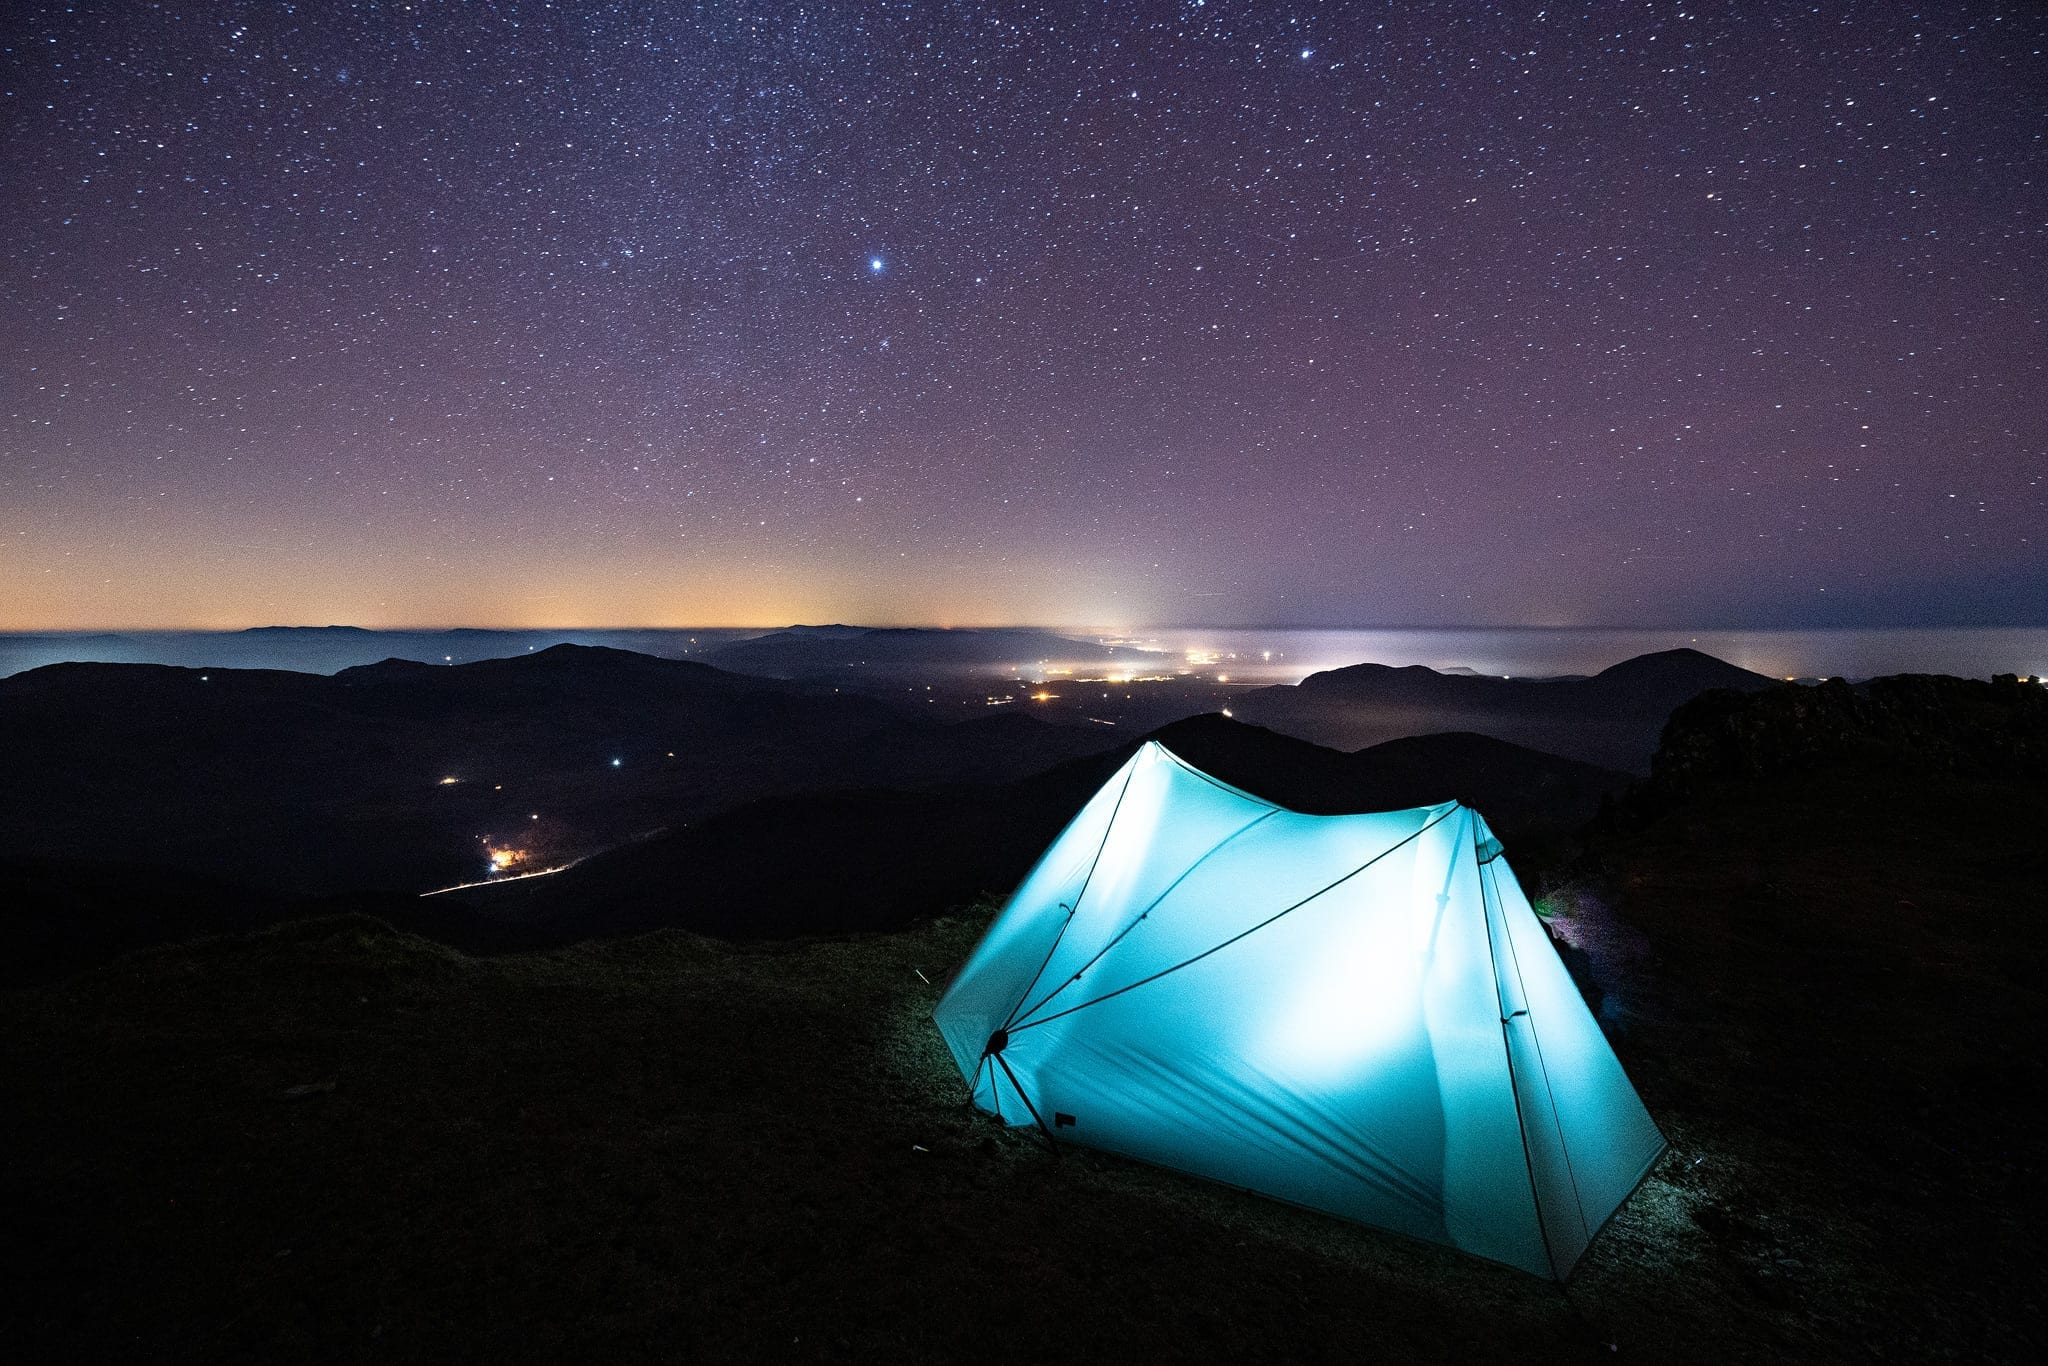 Tarptent Wild Camping on Snowdon - Snowdonia Wild Camping Photography Workshop